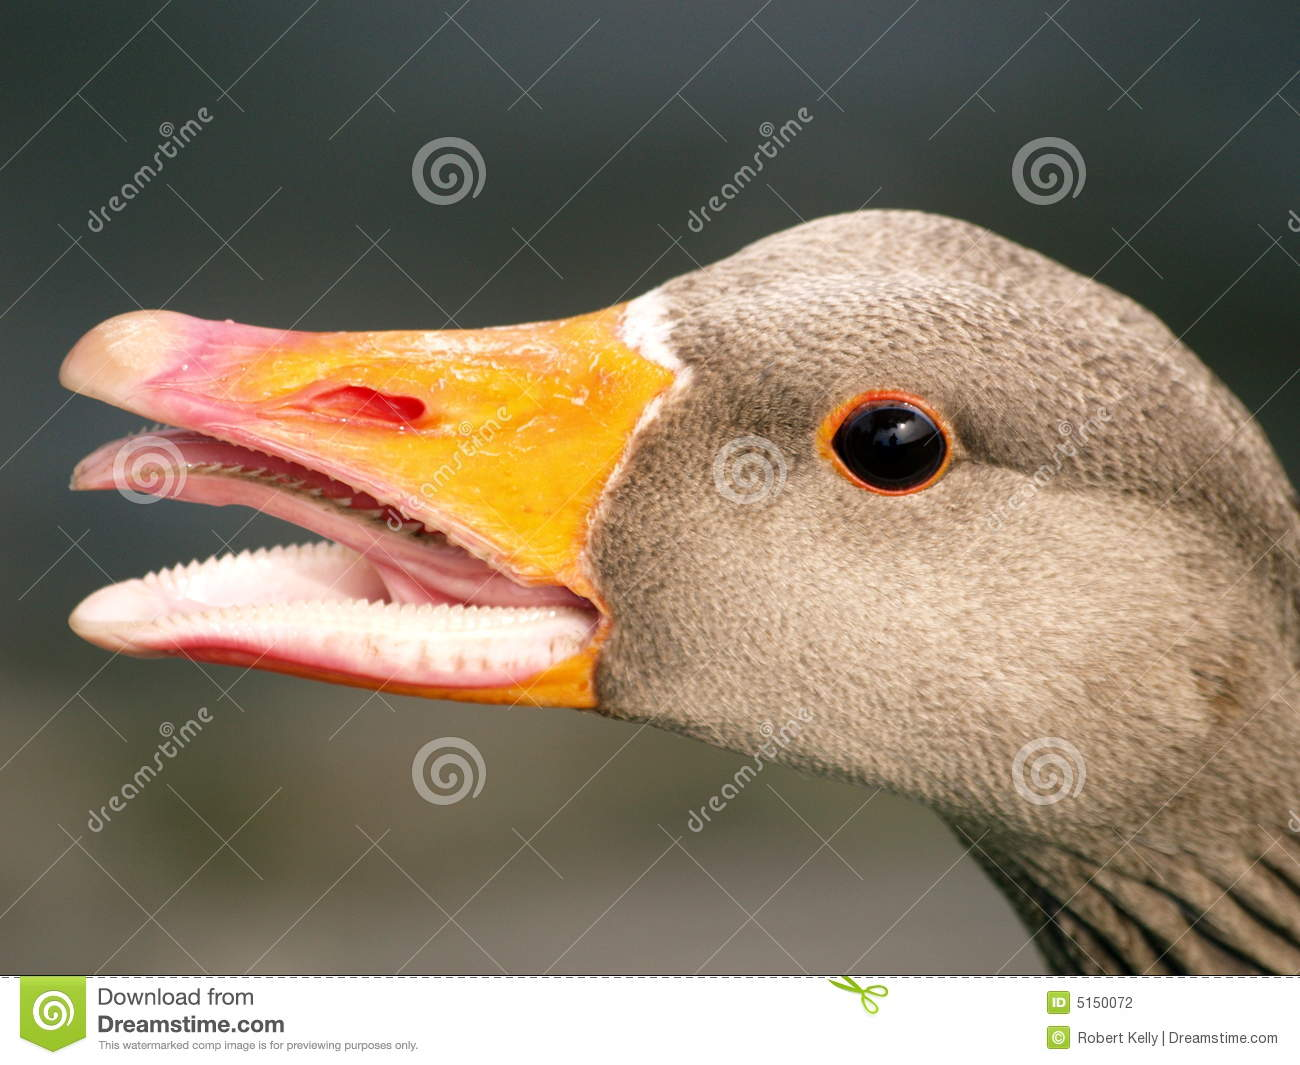 birds mouth open